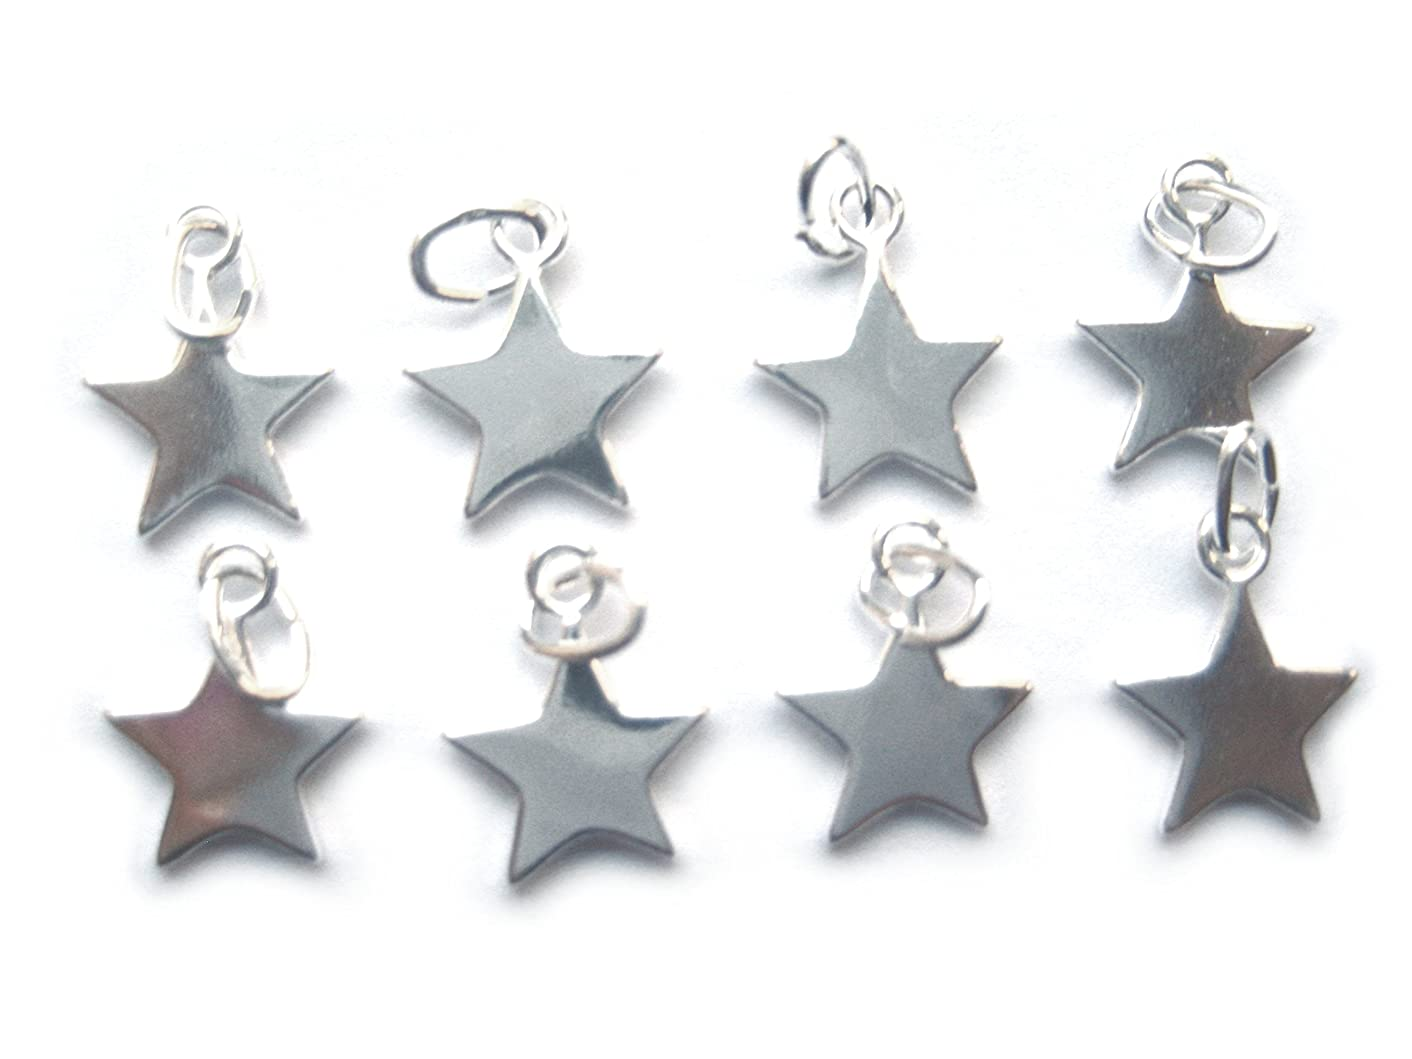 8 Qty. Sterling Silver Star Charm (12x10mm) .925 by JensFindings